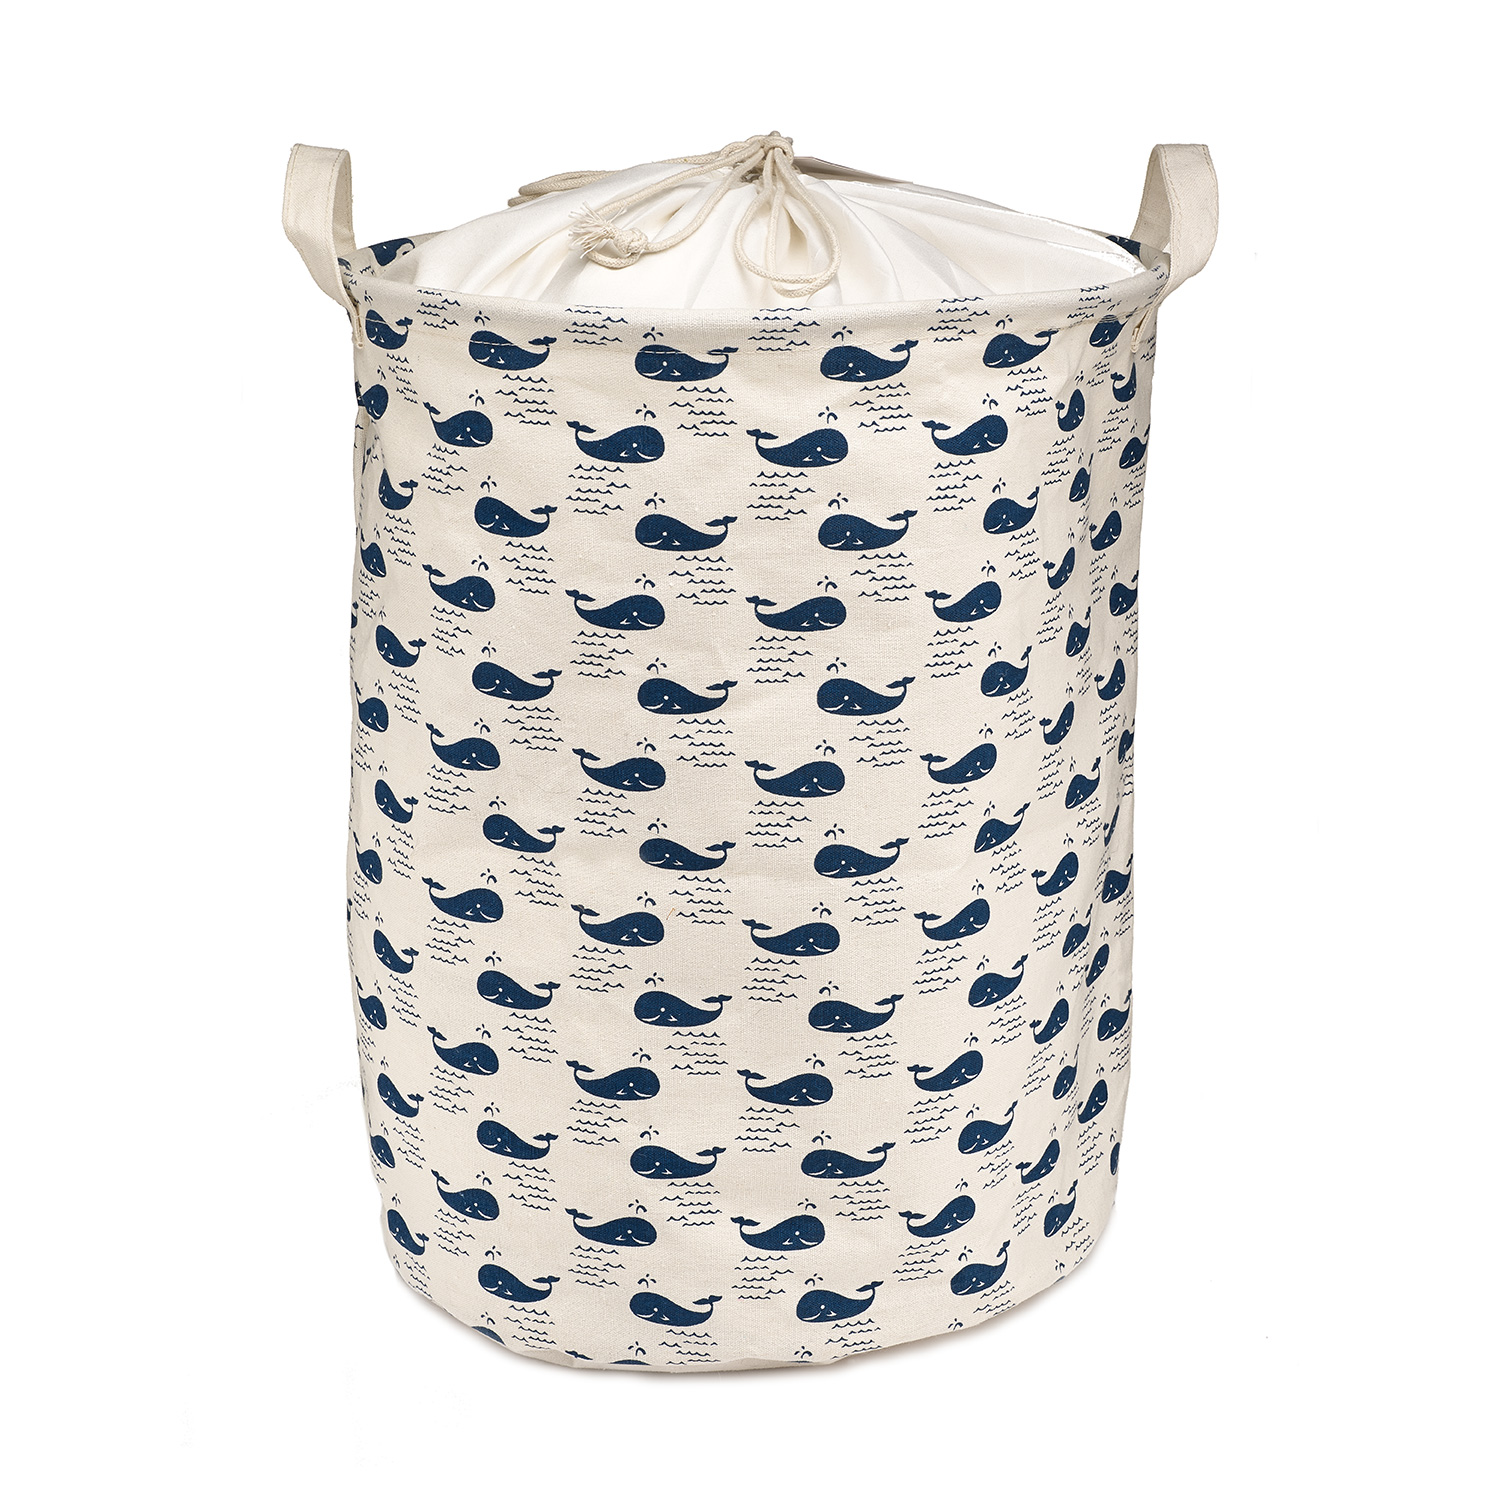 Kids Clothes Hamper Whale Patterned Cotton Fabric Collapsible Kids Laundry